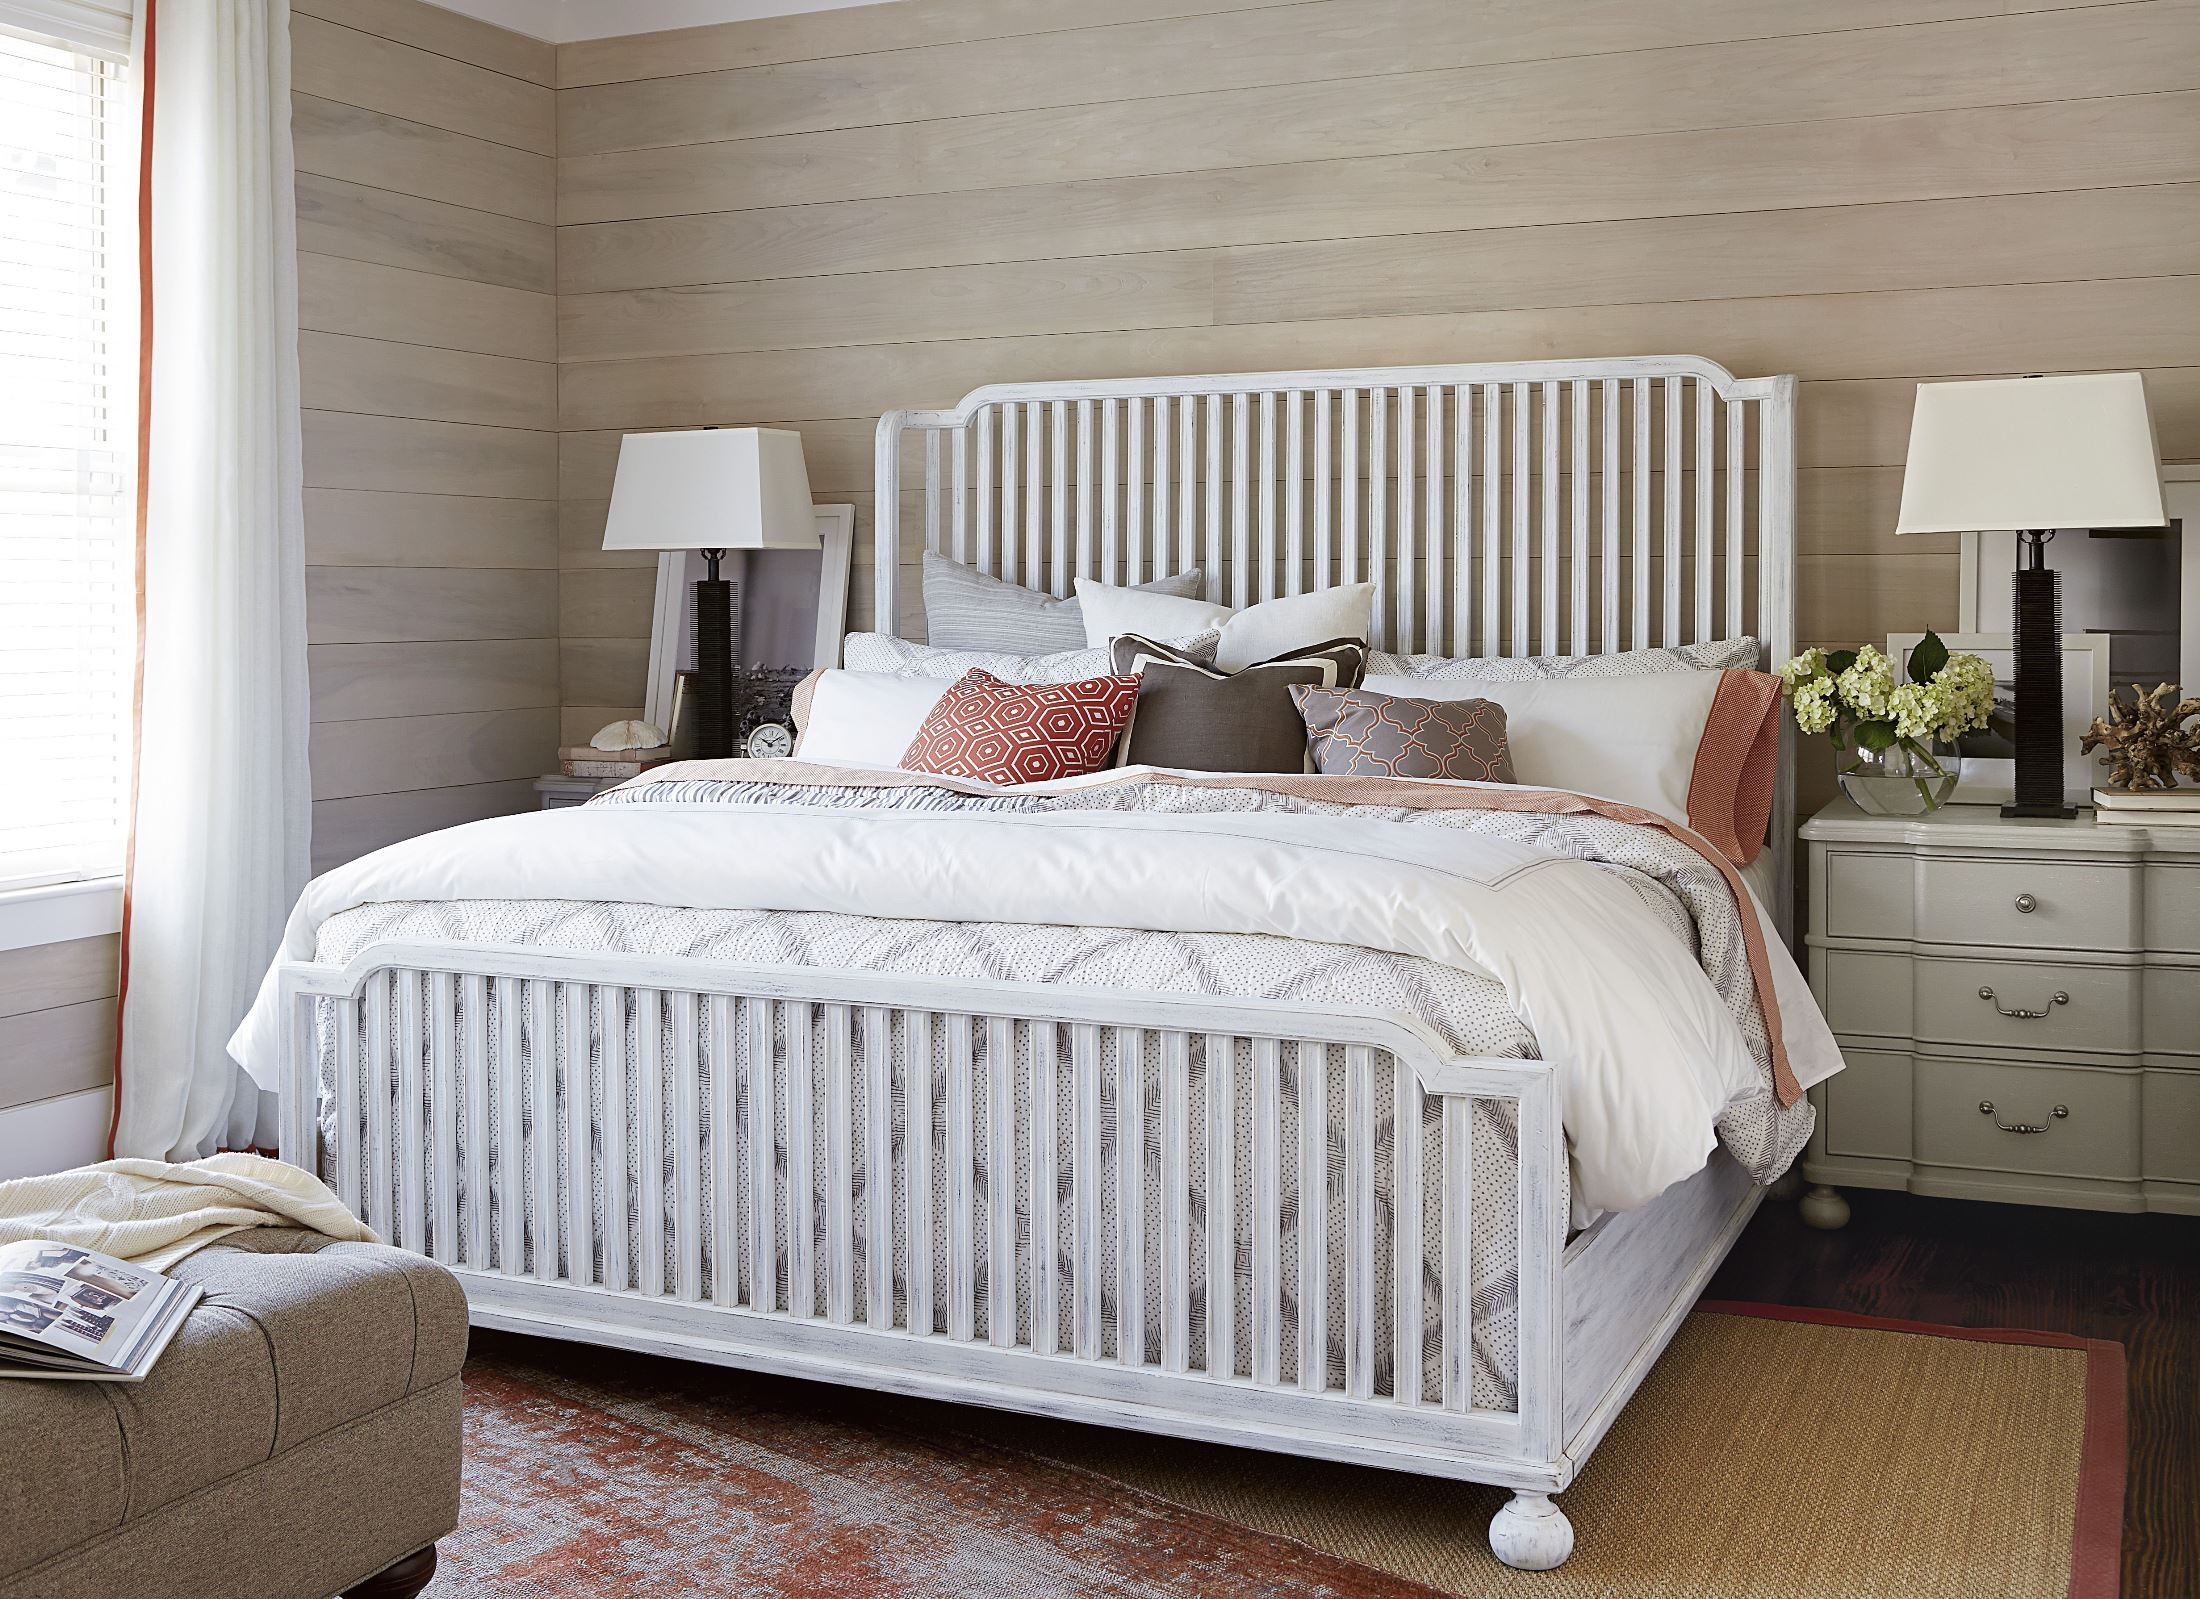 tybee island bedroom set from paula deen 597250b coleman furniture